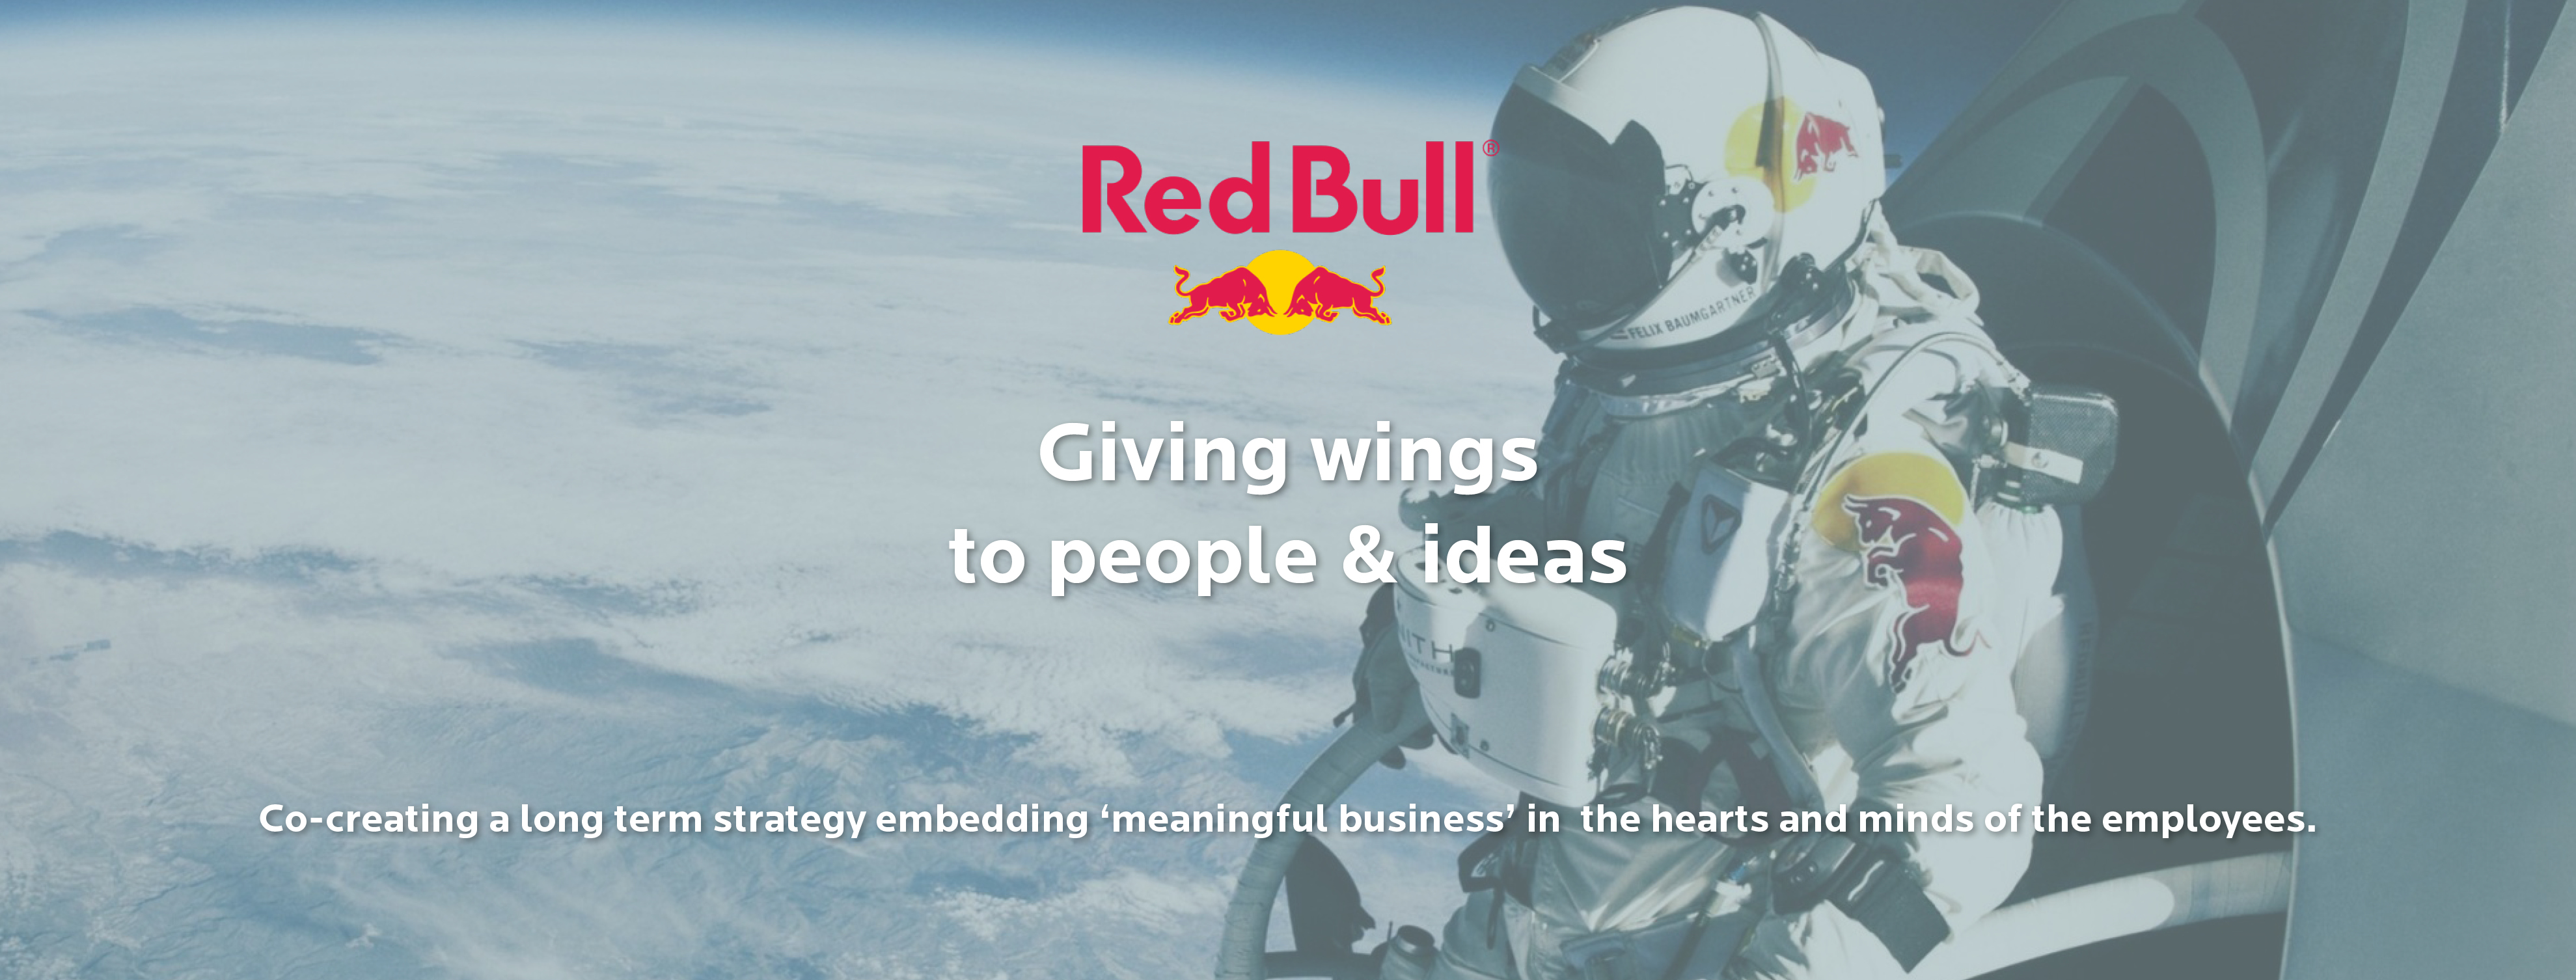 Meaningful business and strategy development at Red Bull